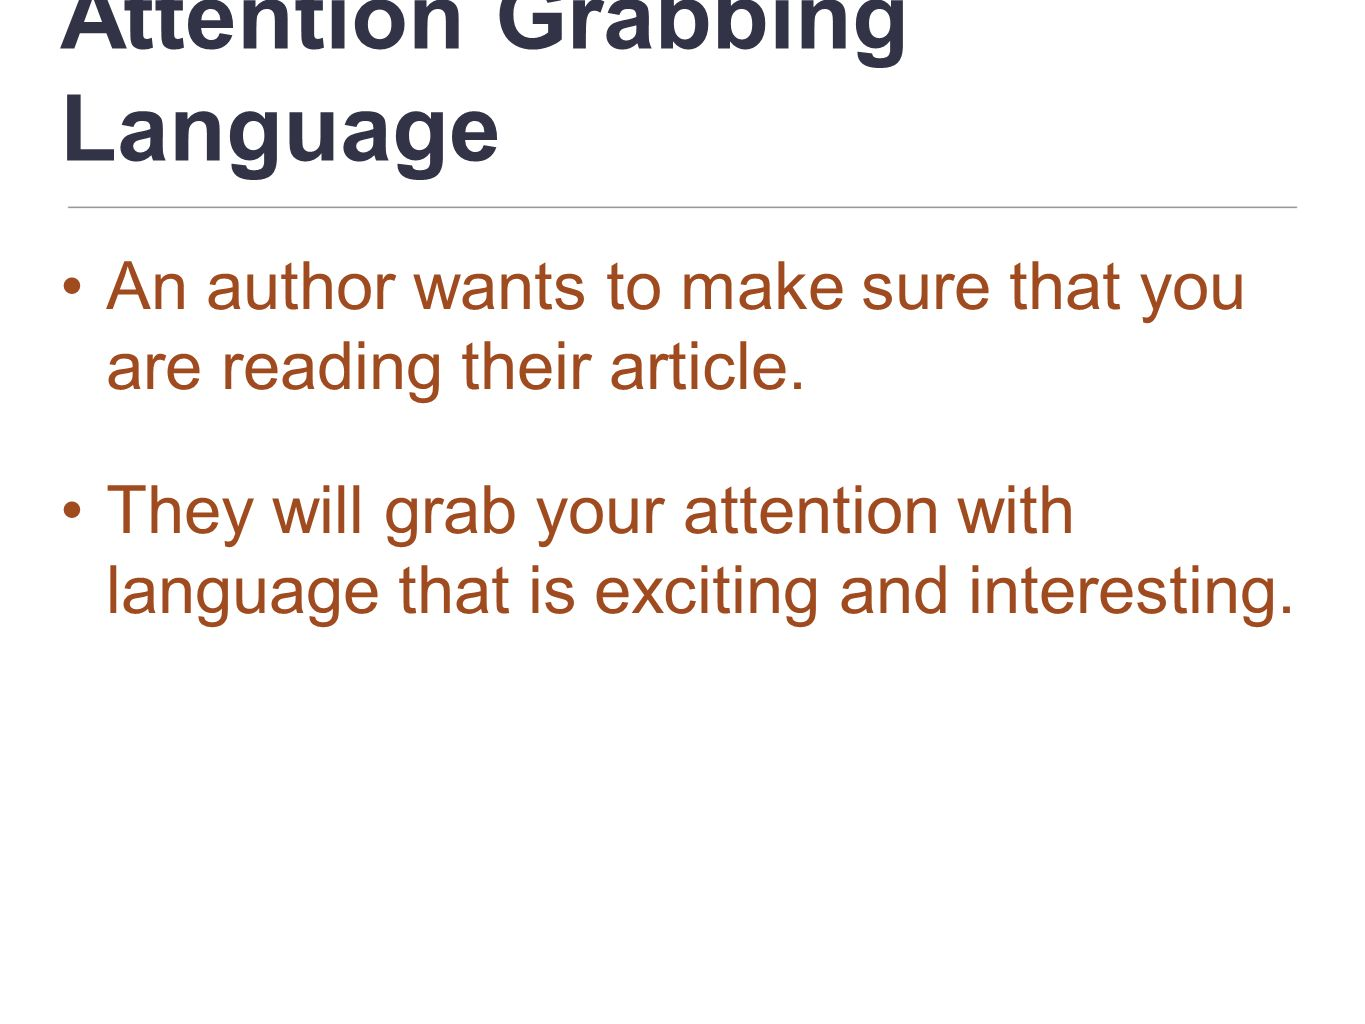 Attention Grabbing Language